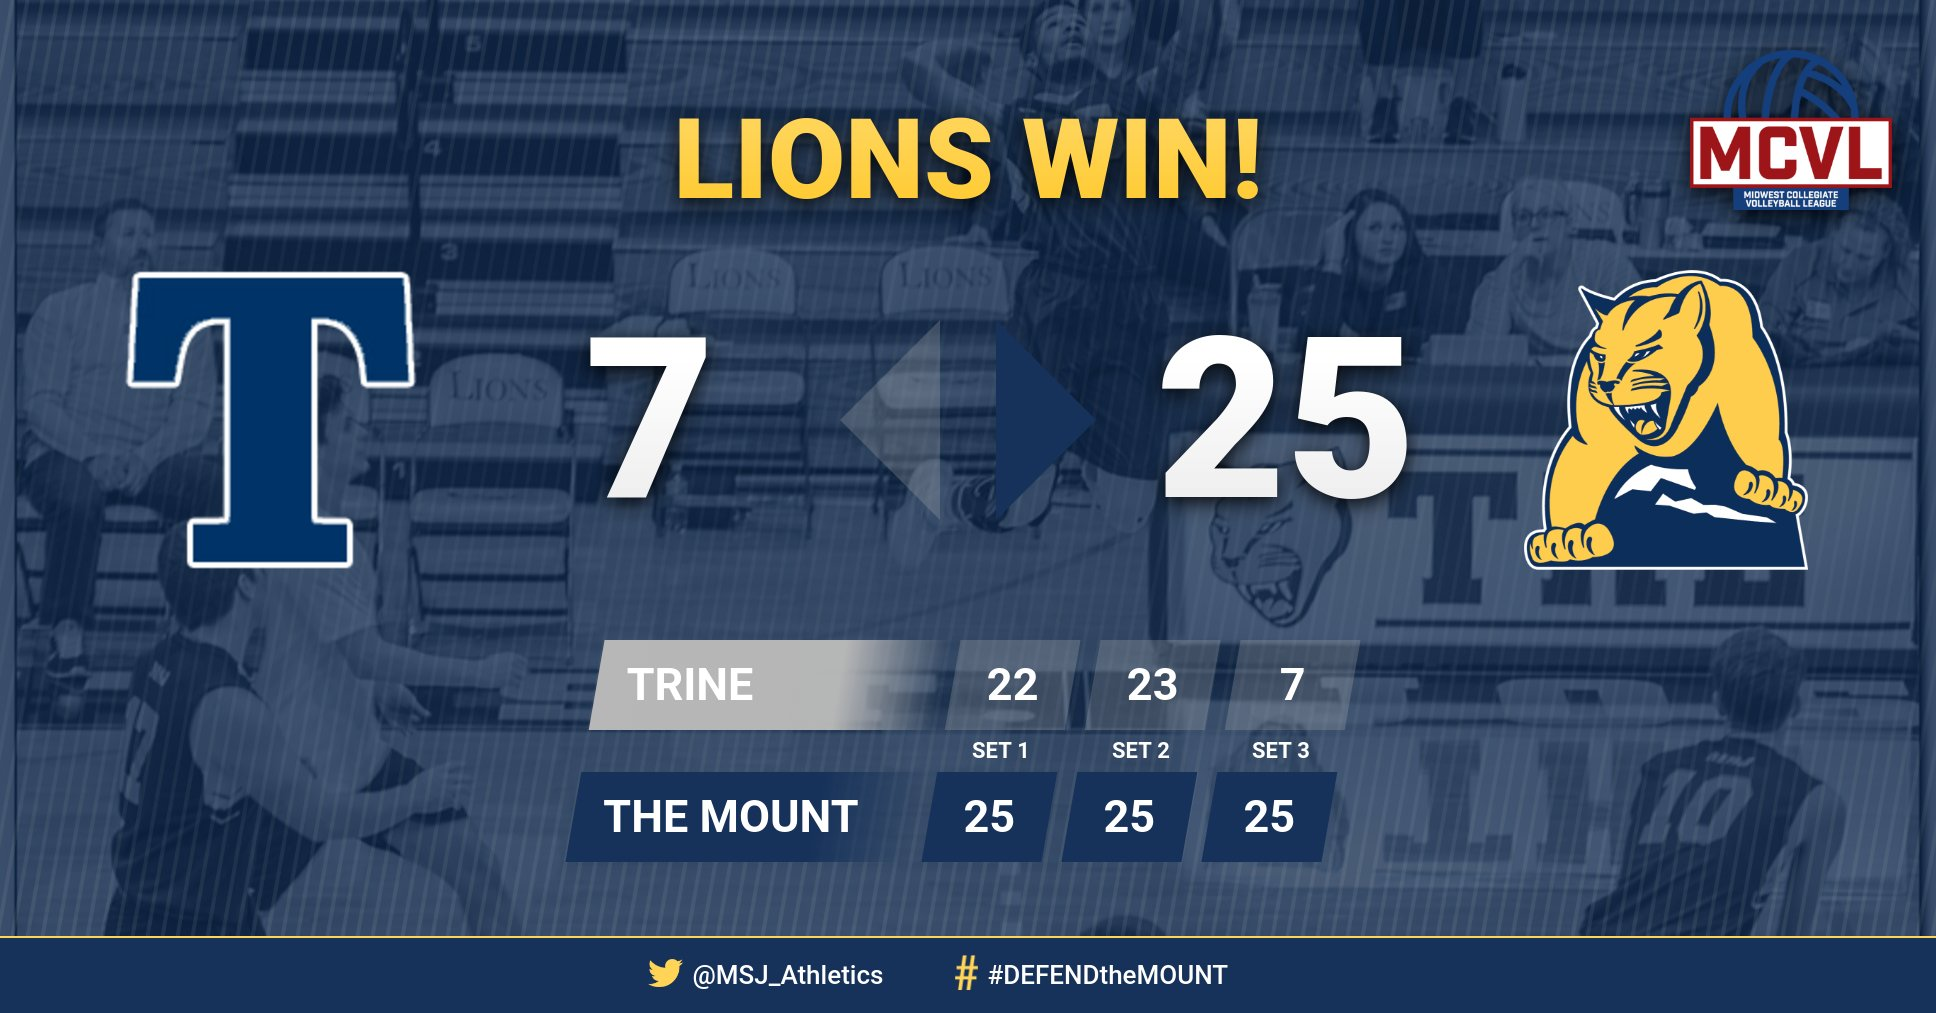 Lions defeat Trine Thunder in three straight sets